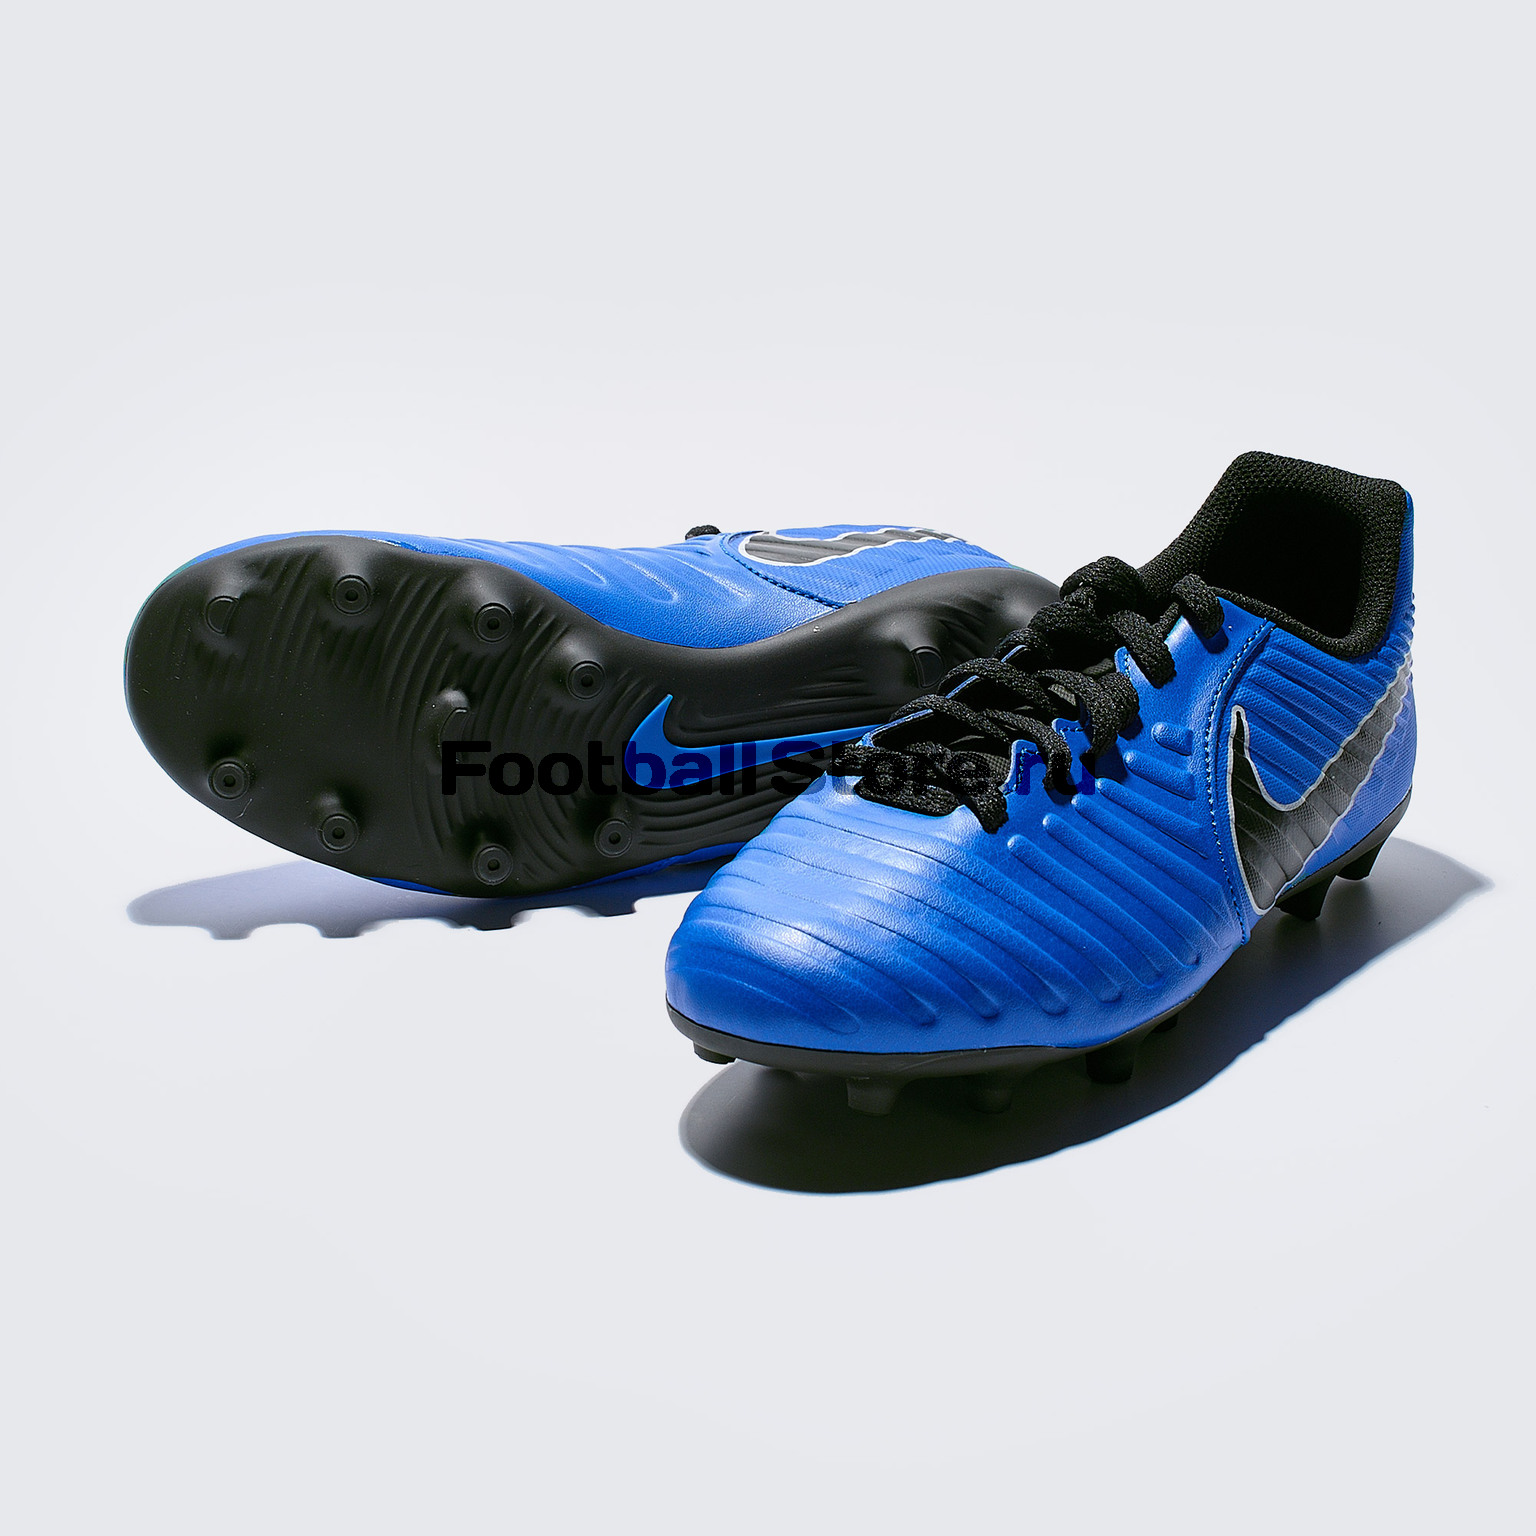 Бутсы детские Nike Legend 7 Club FG AO2300-400 бутсы nike шиповки nike jr tiempox legend vi tf 819191 018